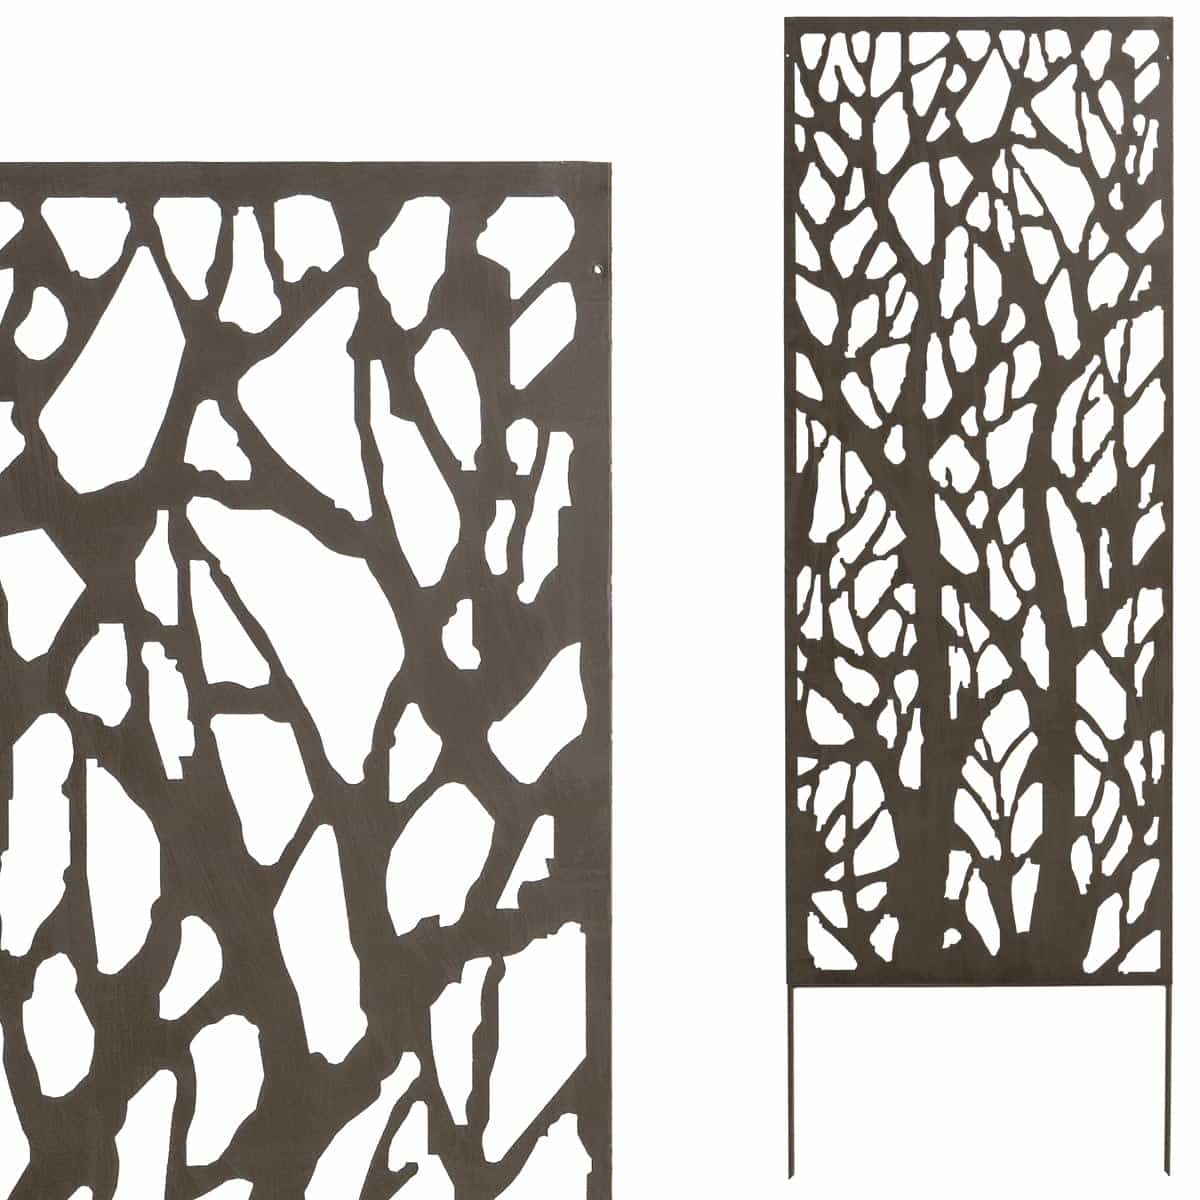 panneau d coratif branches x m tal cloture et occultation. Black Bedroom Furniture Sets. Home Design Ideas